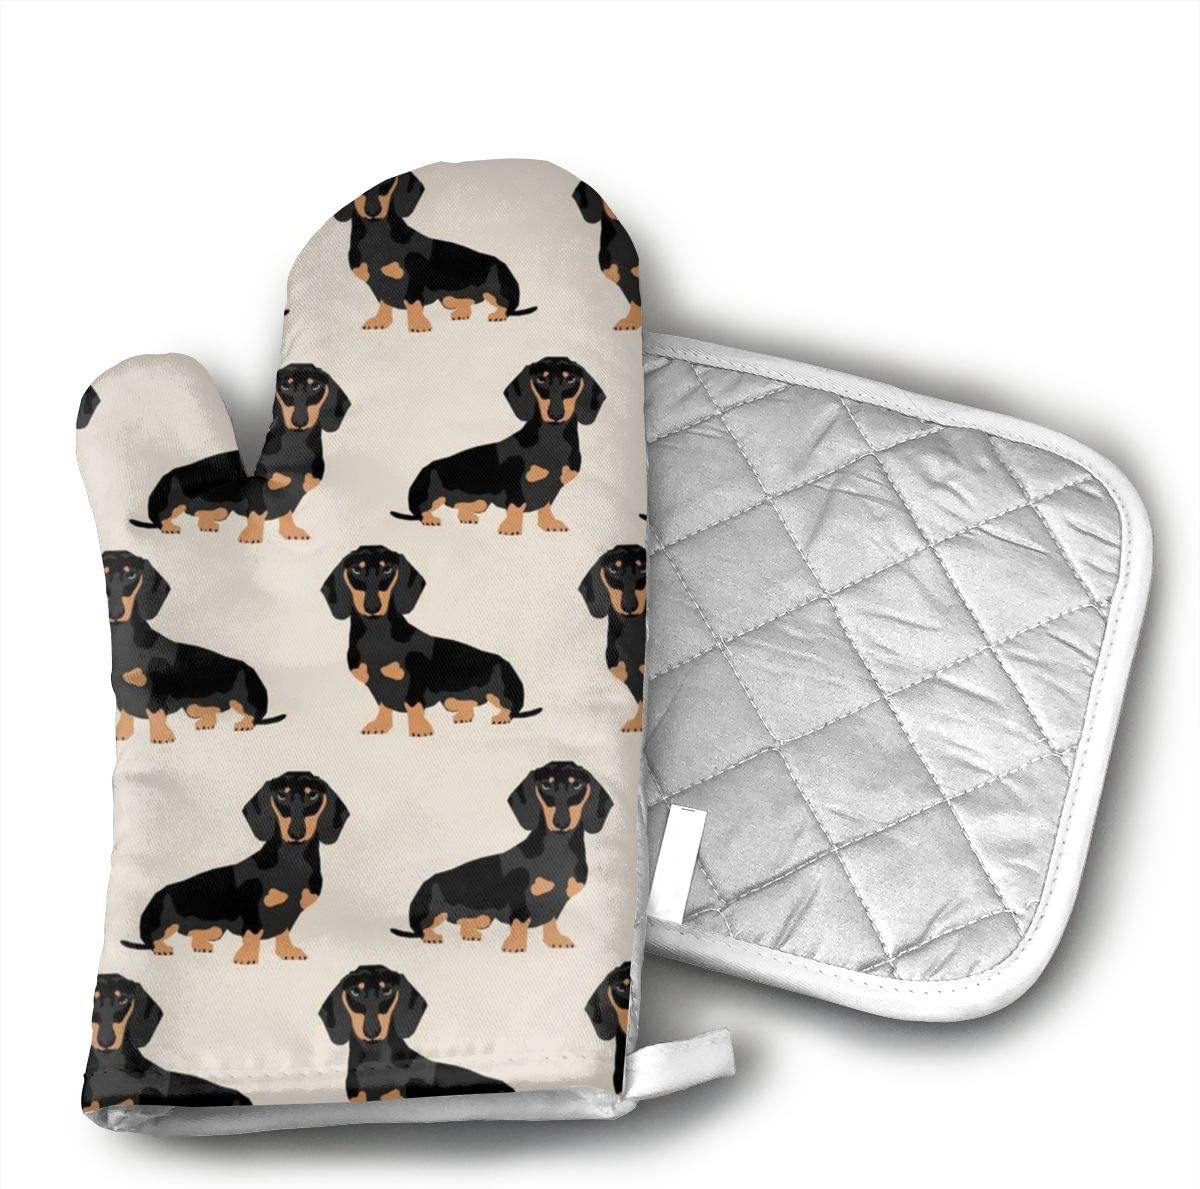 HGUIDHG Wiener Dog Fabric Doxie Dachshund Weiner Dog Pet Dogs Oven Mitts+Insulated Square Mat,Heat Resistant Kitchen Gloves Soft Insulated Deep Pockets, Non-Slip Handles